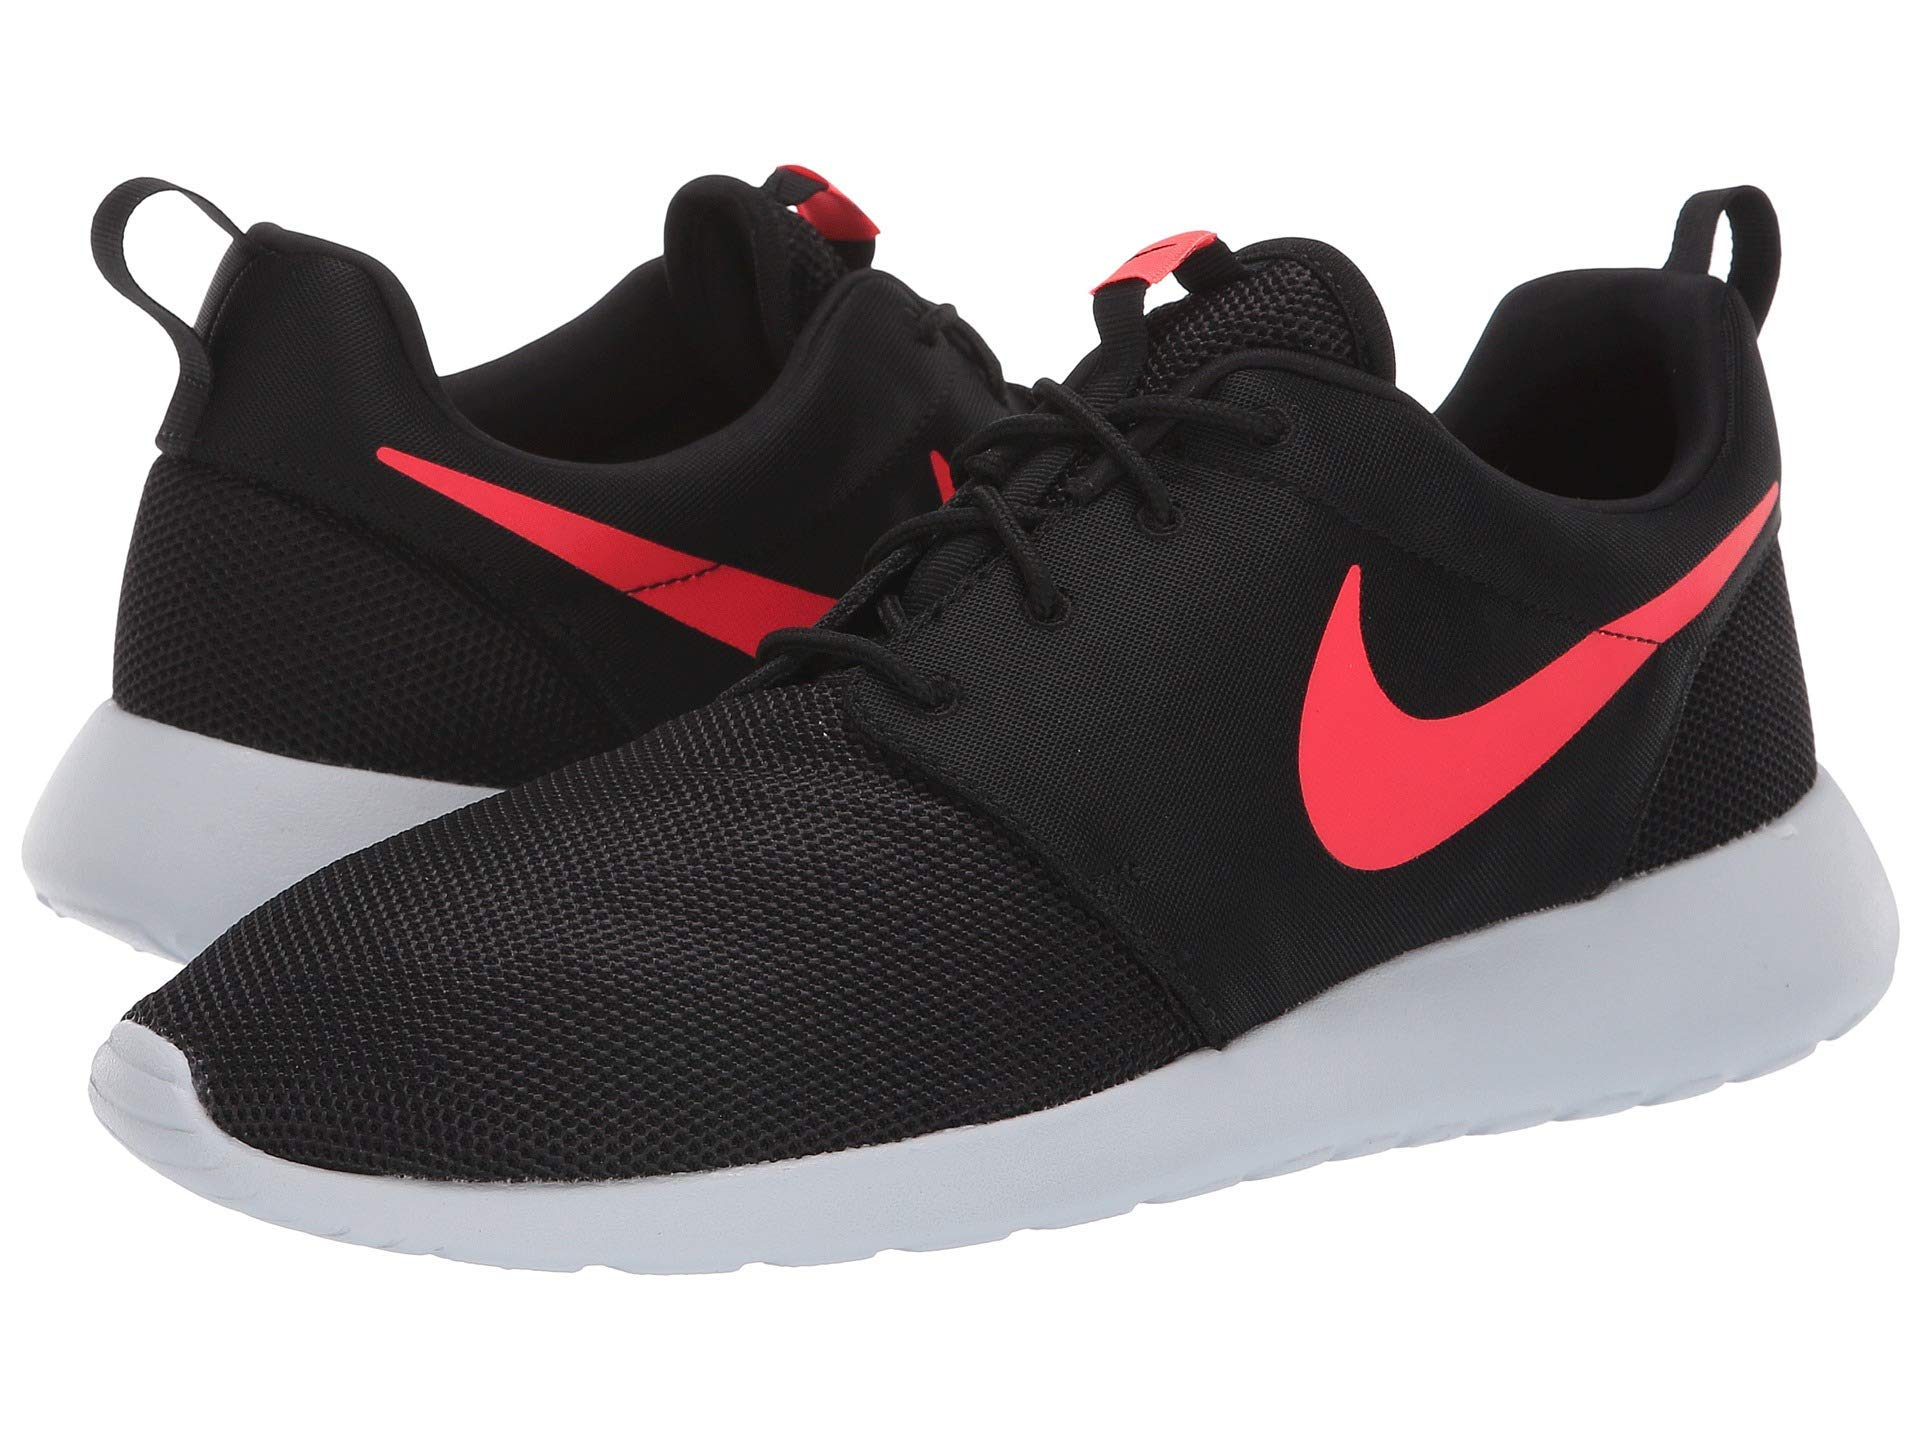 best website cd49b 96c72 Galleon - Nike Men s Roshe One Shoe Black Solar Red Pure Platinum Size 9 M  US